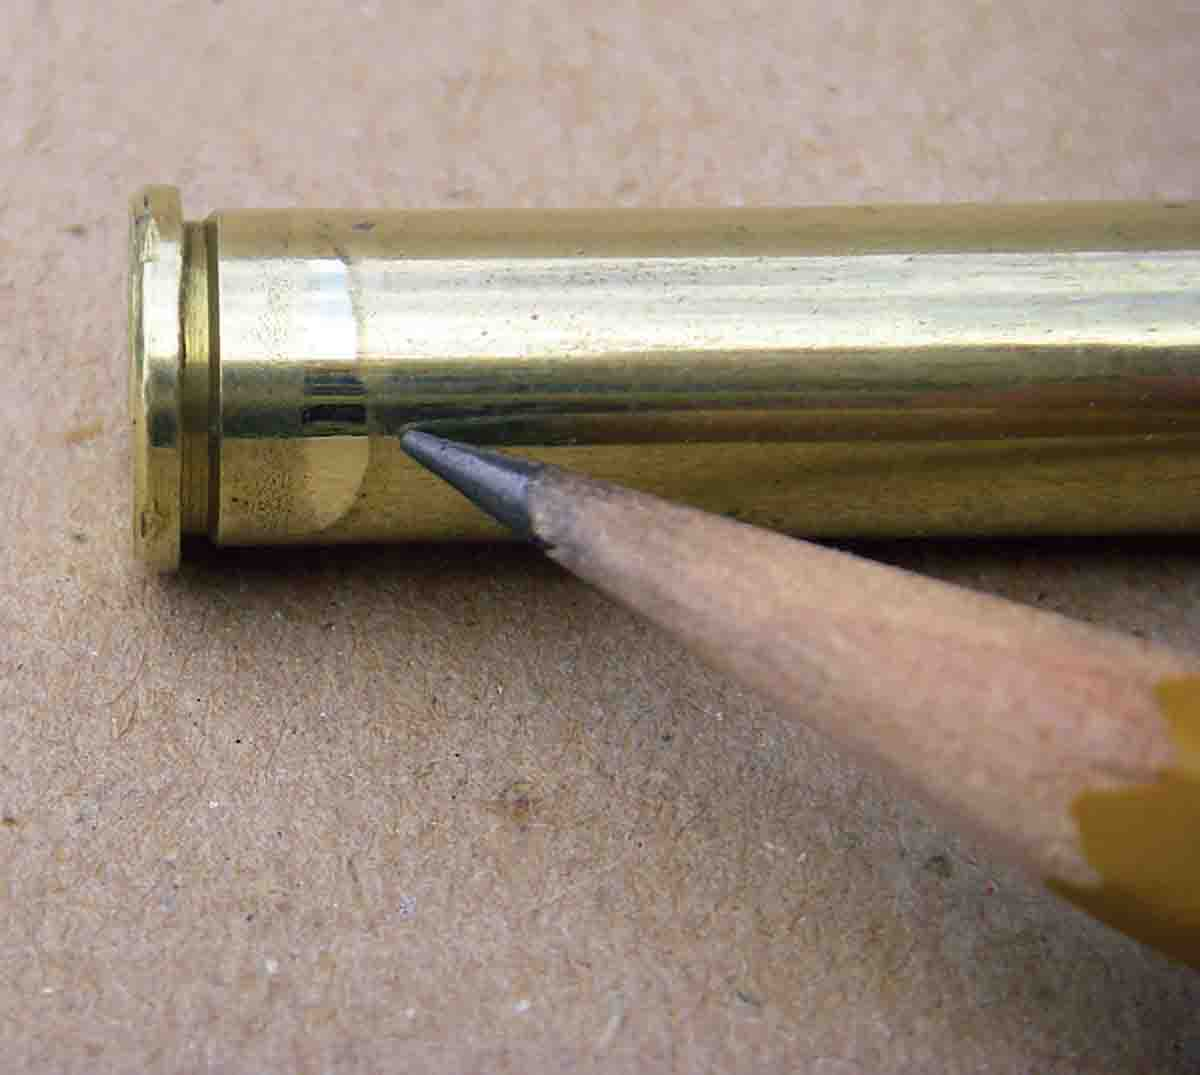 Some lever-action rifles feature a chamber with a bevel to facilitate feeding, which can leave a bulge just forward of the head. This must be removed to assure reliable chambering of handloaded cartridges.